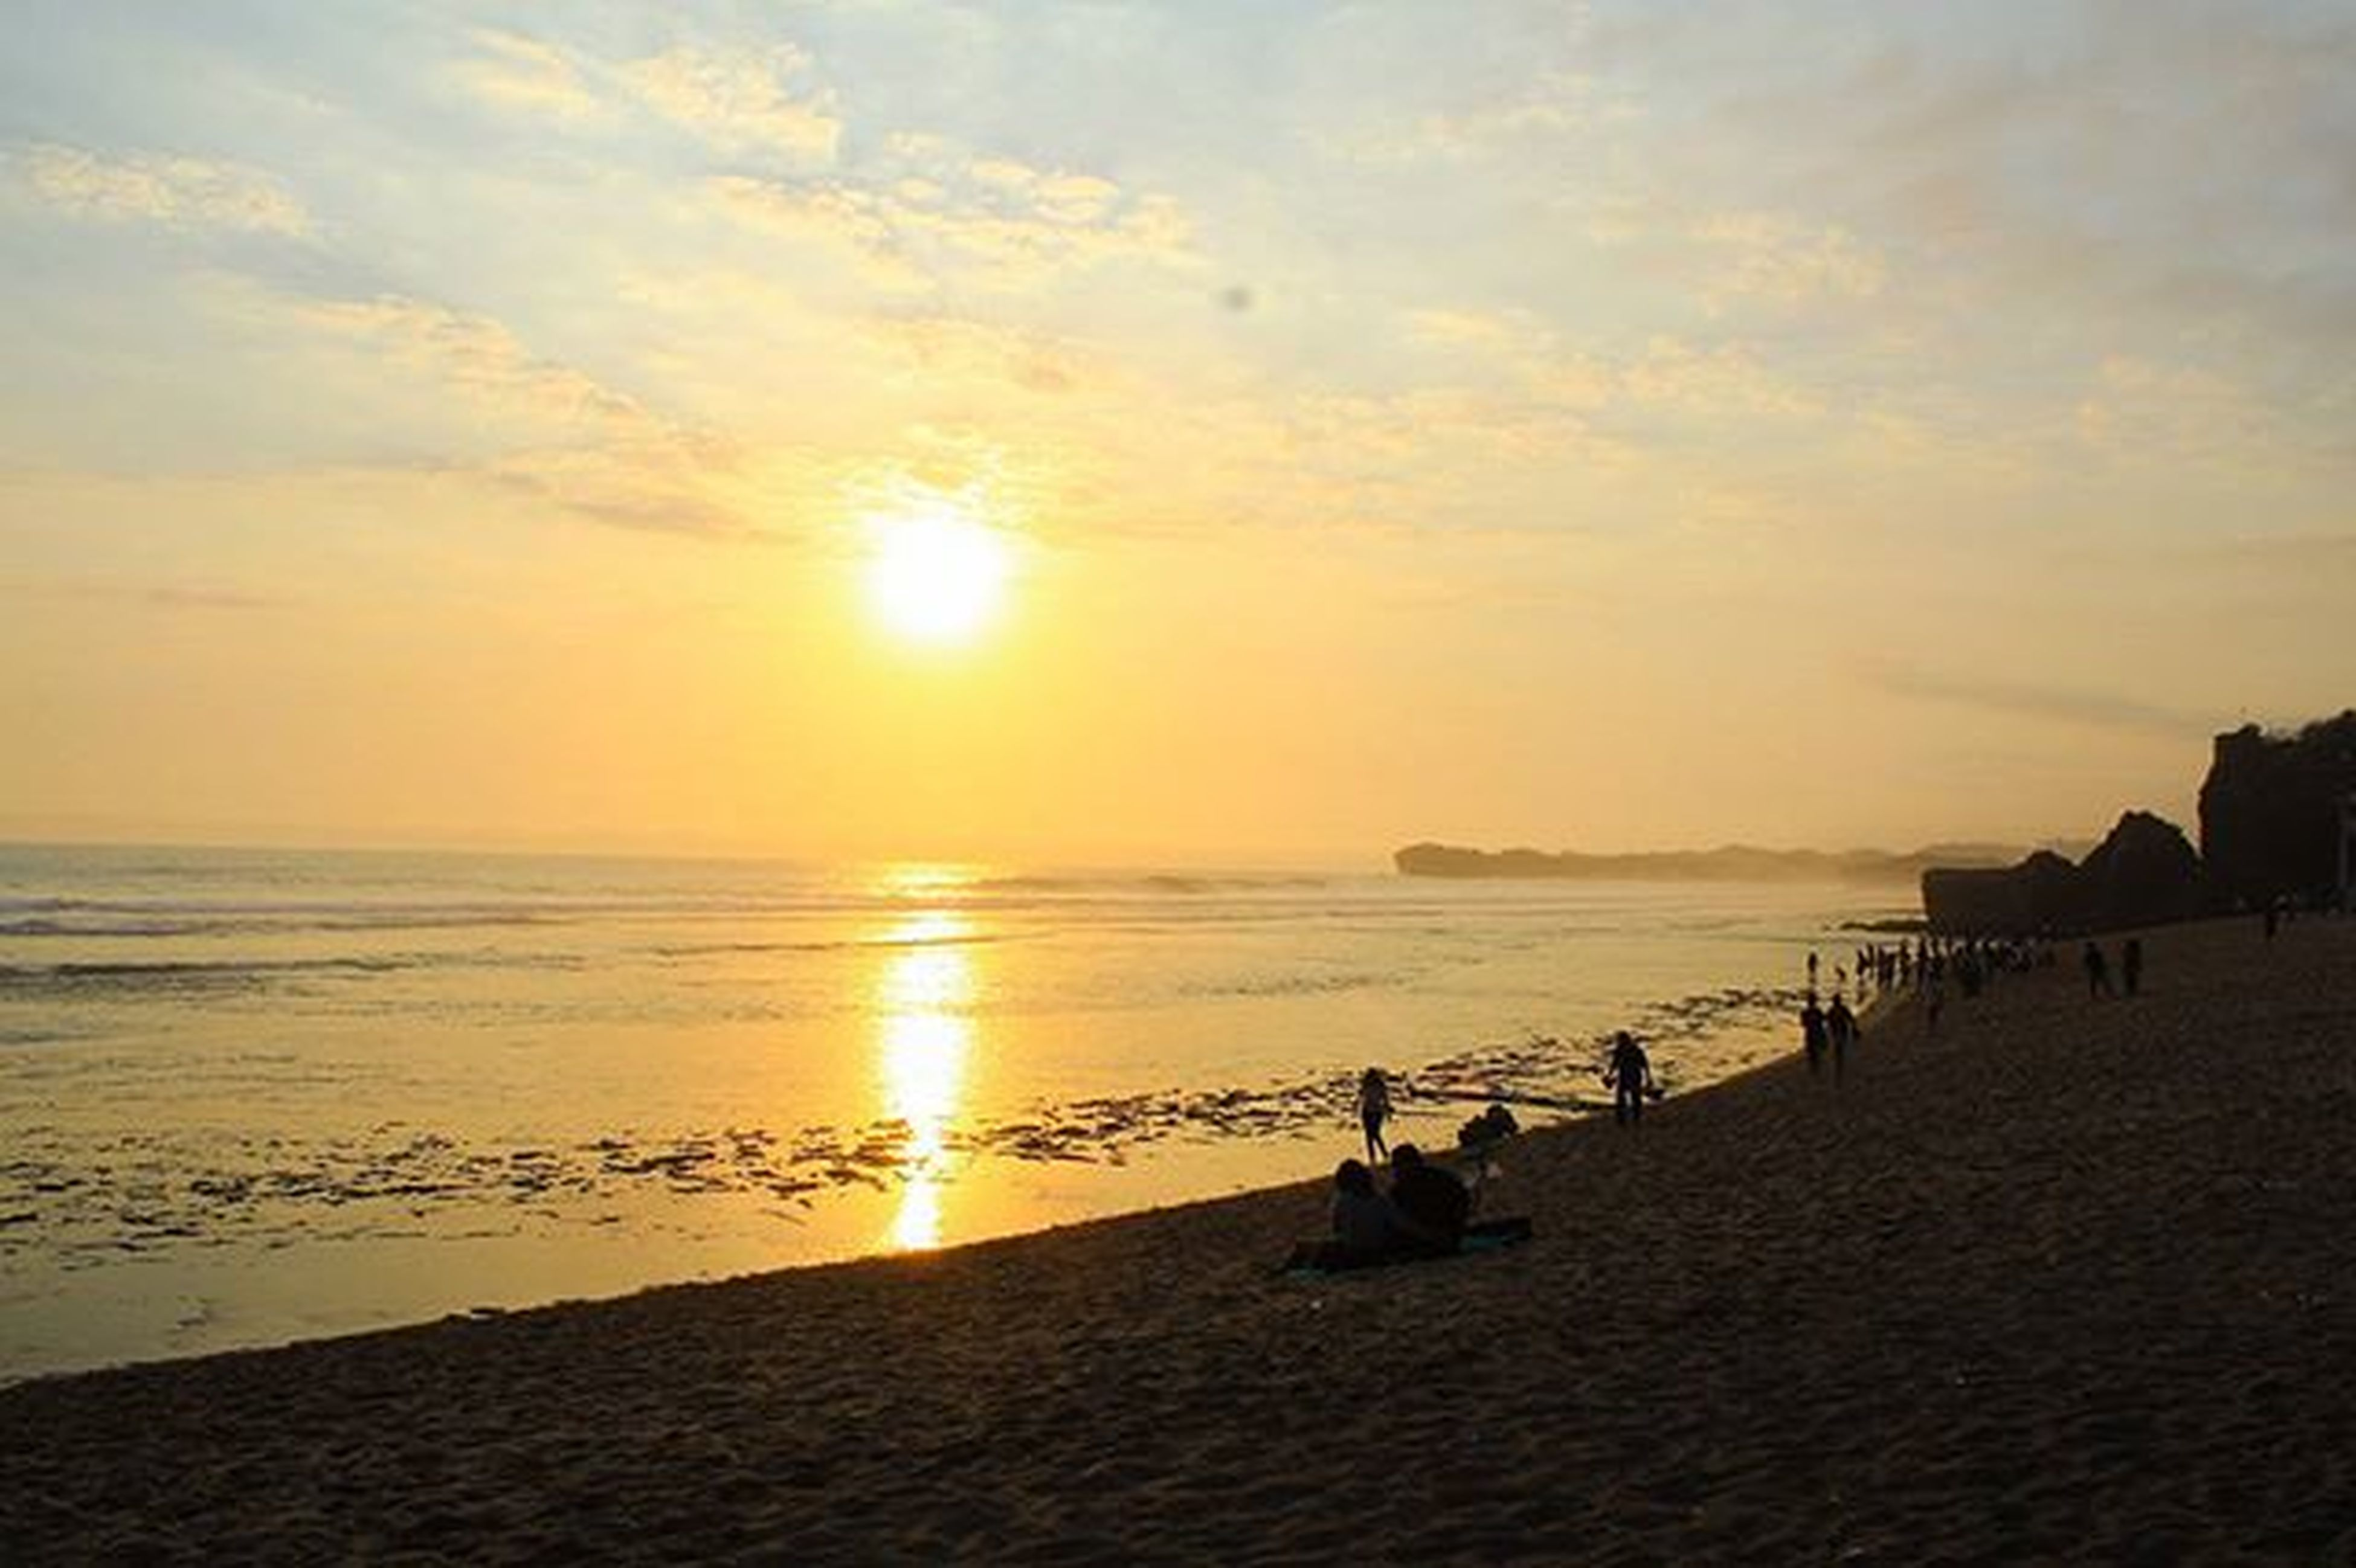 sea, sunset, horizon over water, beach, water, sun, shore, scenics, sky, beauty in nature, tranquil scene, orange color, tranquility, sand, idyllic, nature, sunlight, incidental people, cloud - sky, vacations